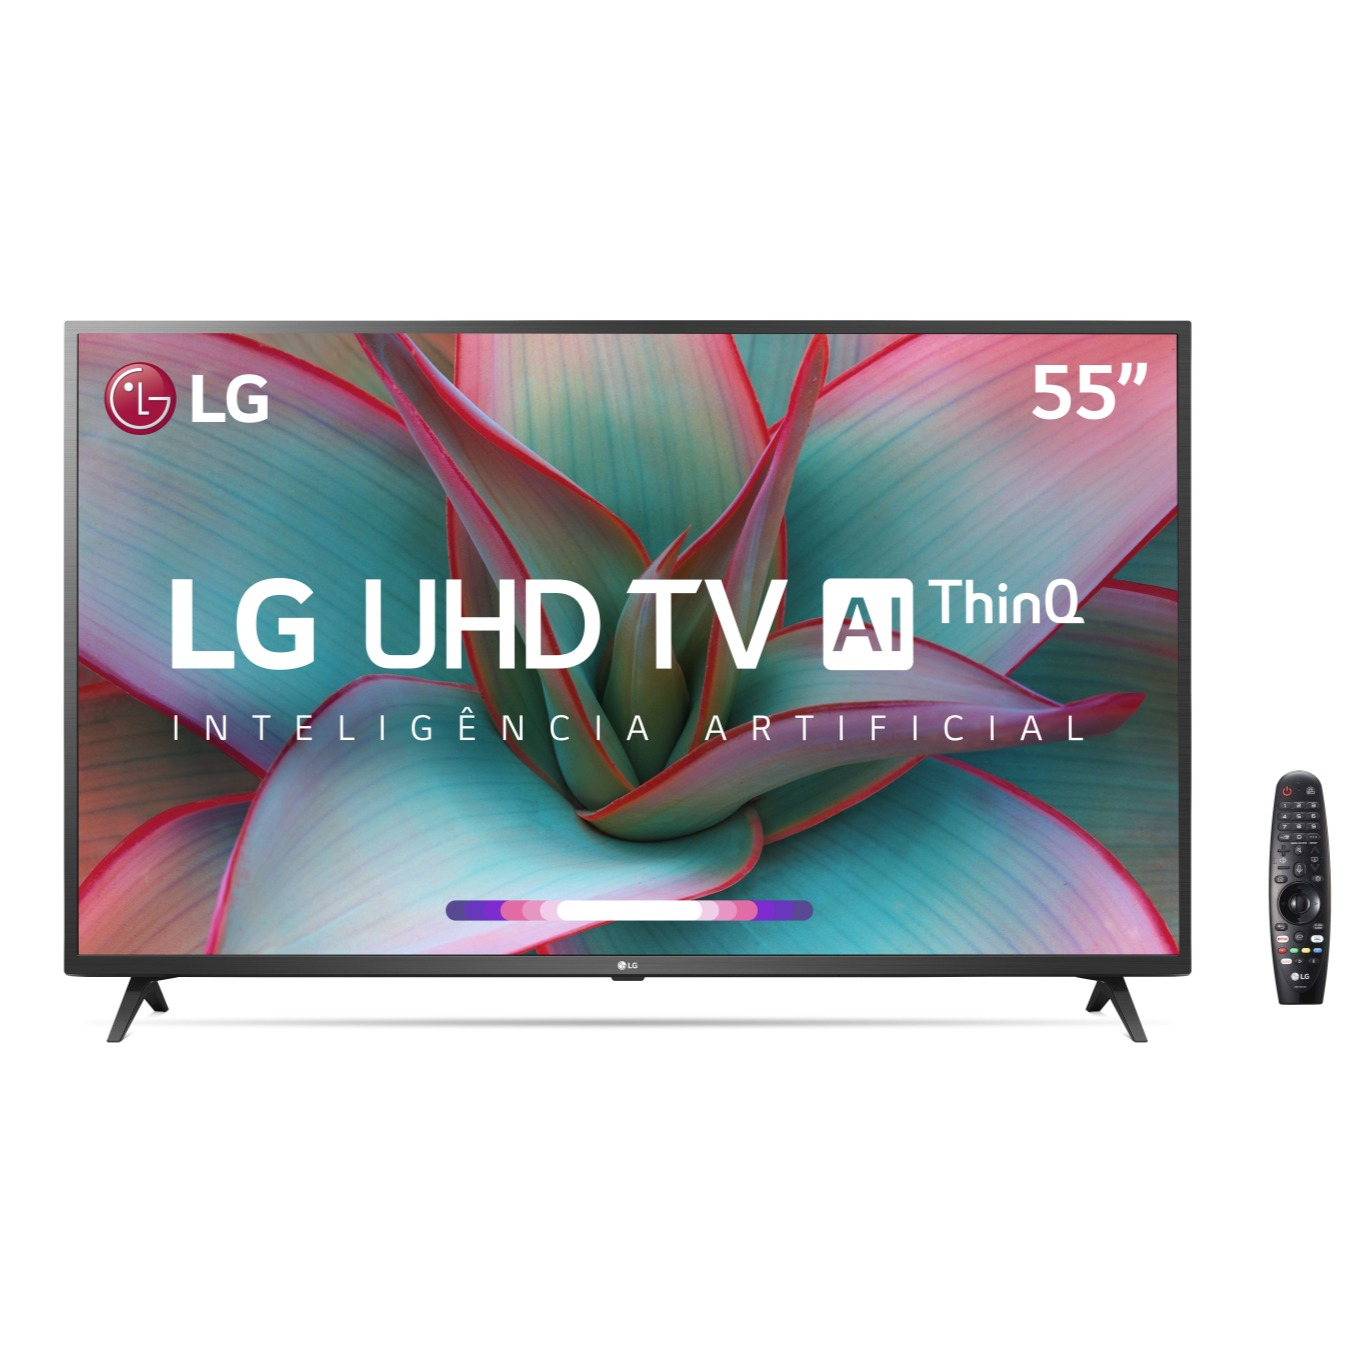 Smart TV LED 55 LG ThinQ AI 4KUltra HD HDR10 Pro Google Assistente Alexa 55UN7310 - Wi-Fi 3 HDMI 2 USB